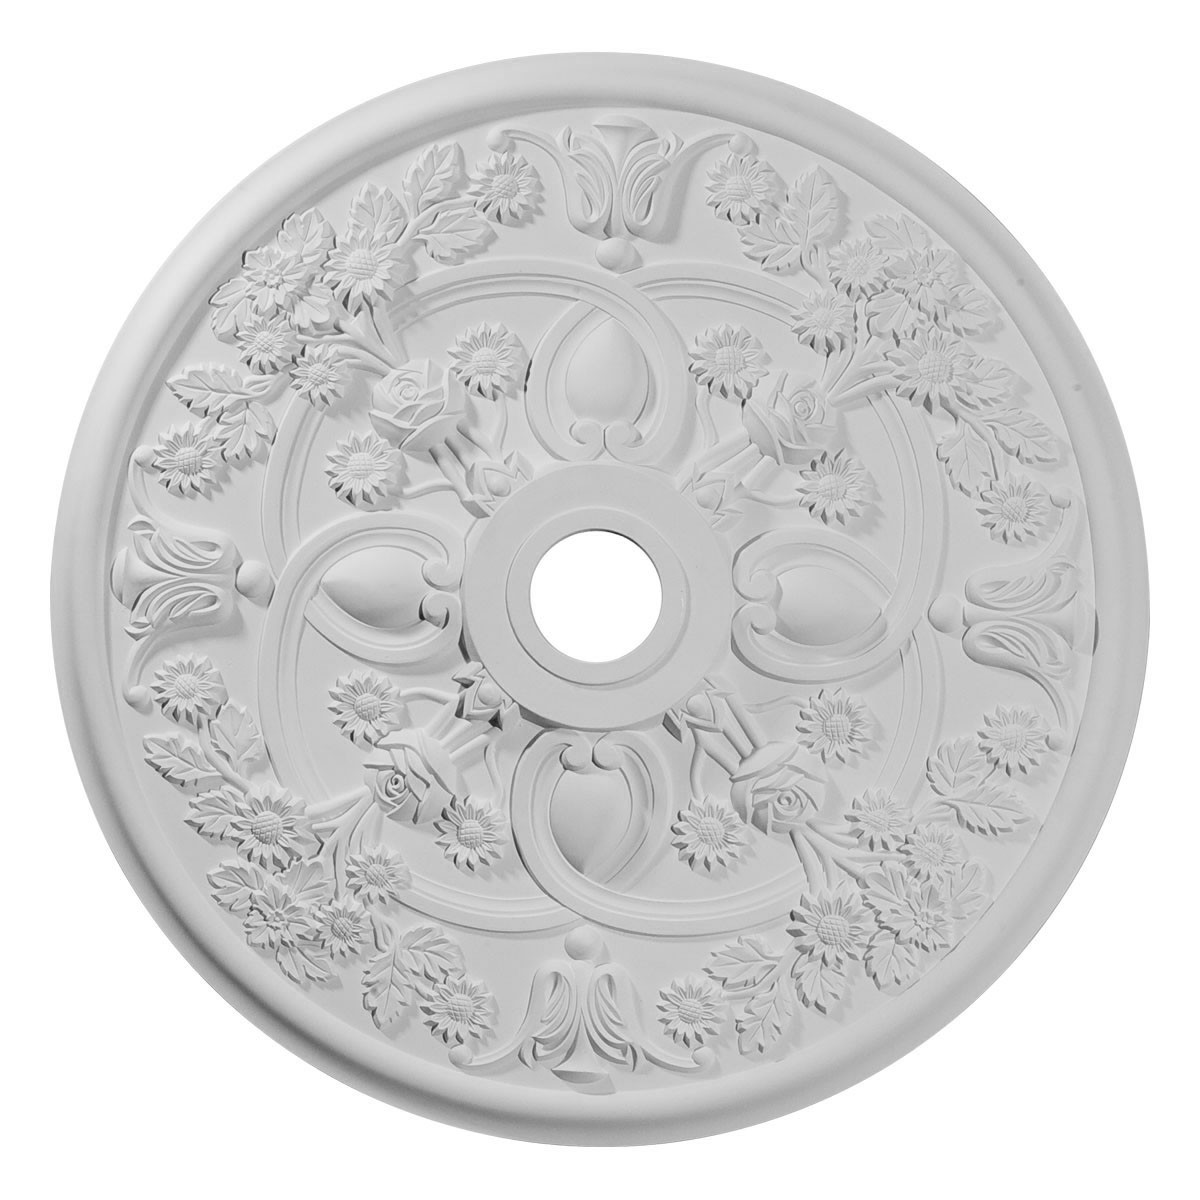 """EM-CM30RO - 30 7/8""""OD x 3 5/8""""ID x 1 3/8""""P Rose Ceiling Medallion (Fits Canopies up to 5 1/4"""")"""